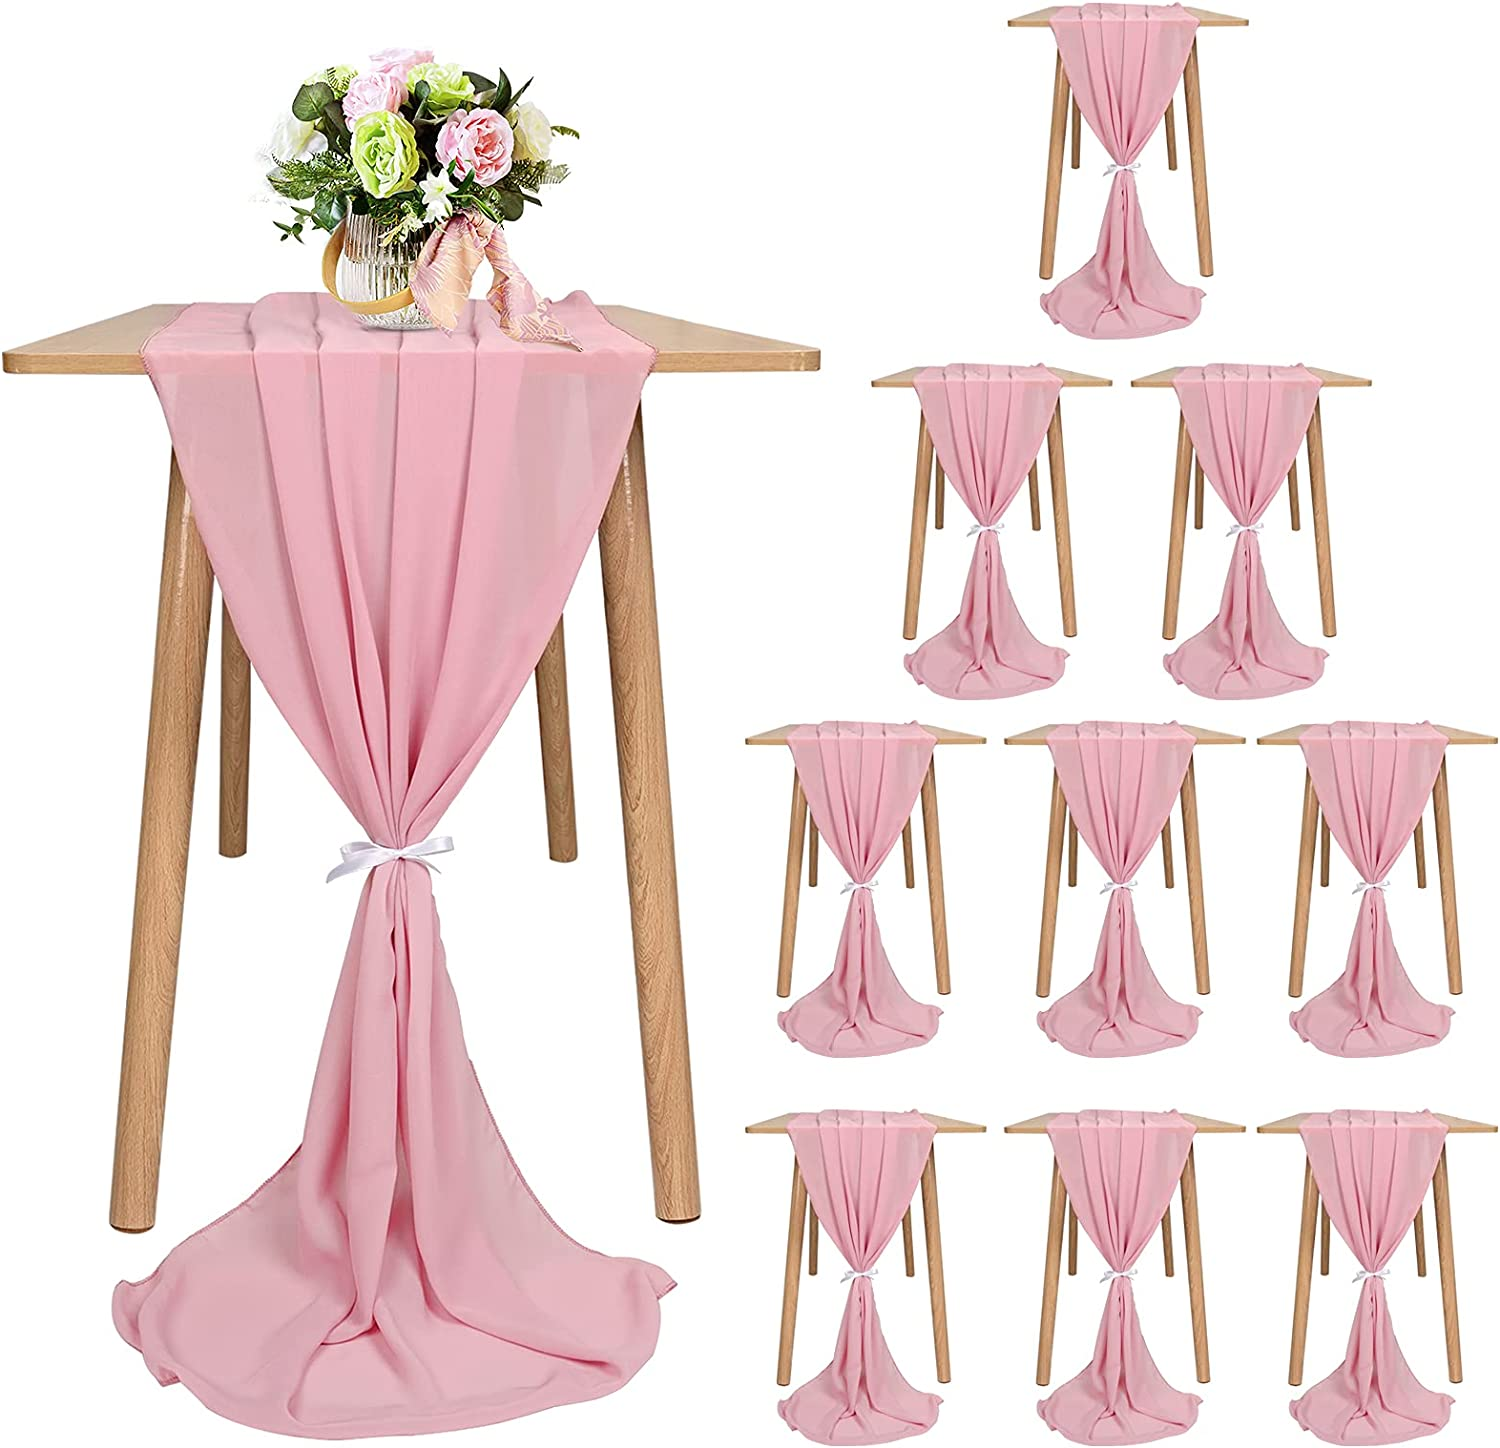 10 Pack New arrival Chiffon Table Runner 10Ft-28x120 Romantic Inches Wedding Sales of SALE items from new works